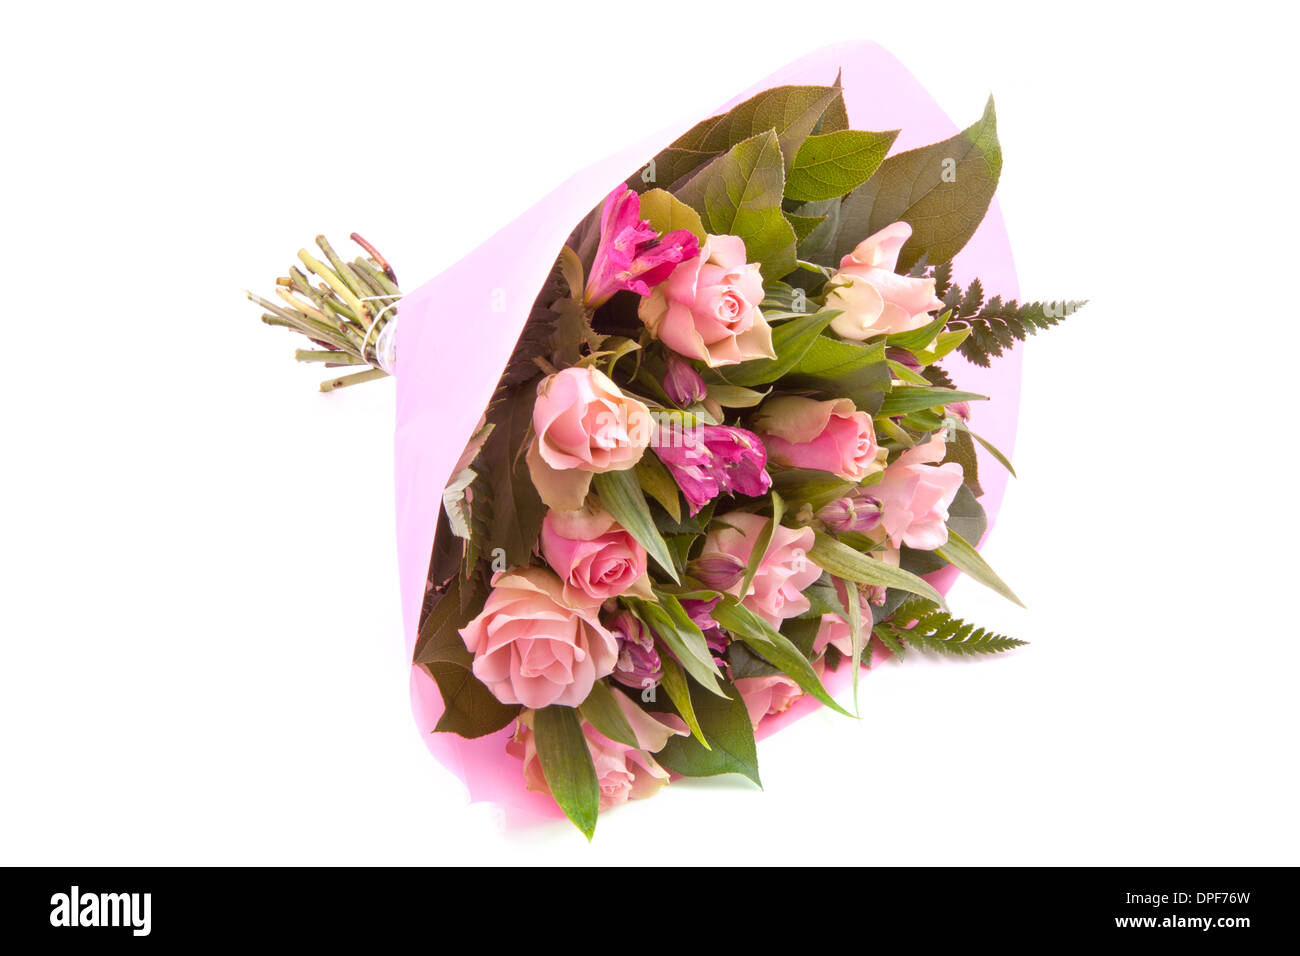 Bouquet with different kind of flowers wrapped in pink paper stock bouquet with different kind of flowers wrapped in pink paper mightylinksfo Gallery